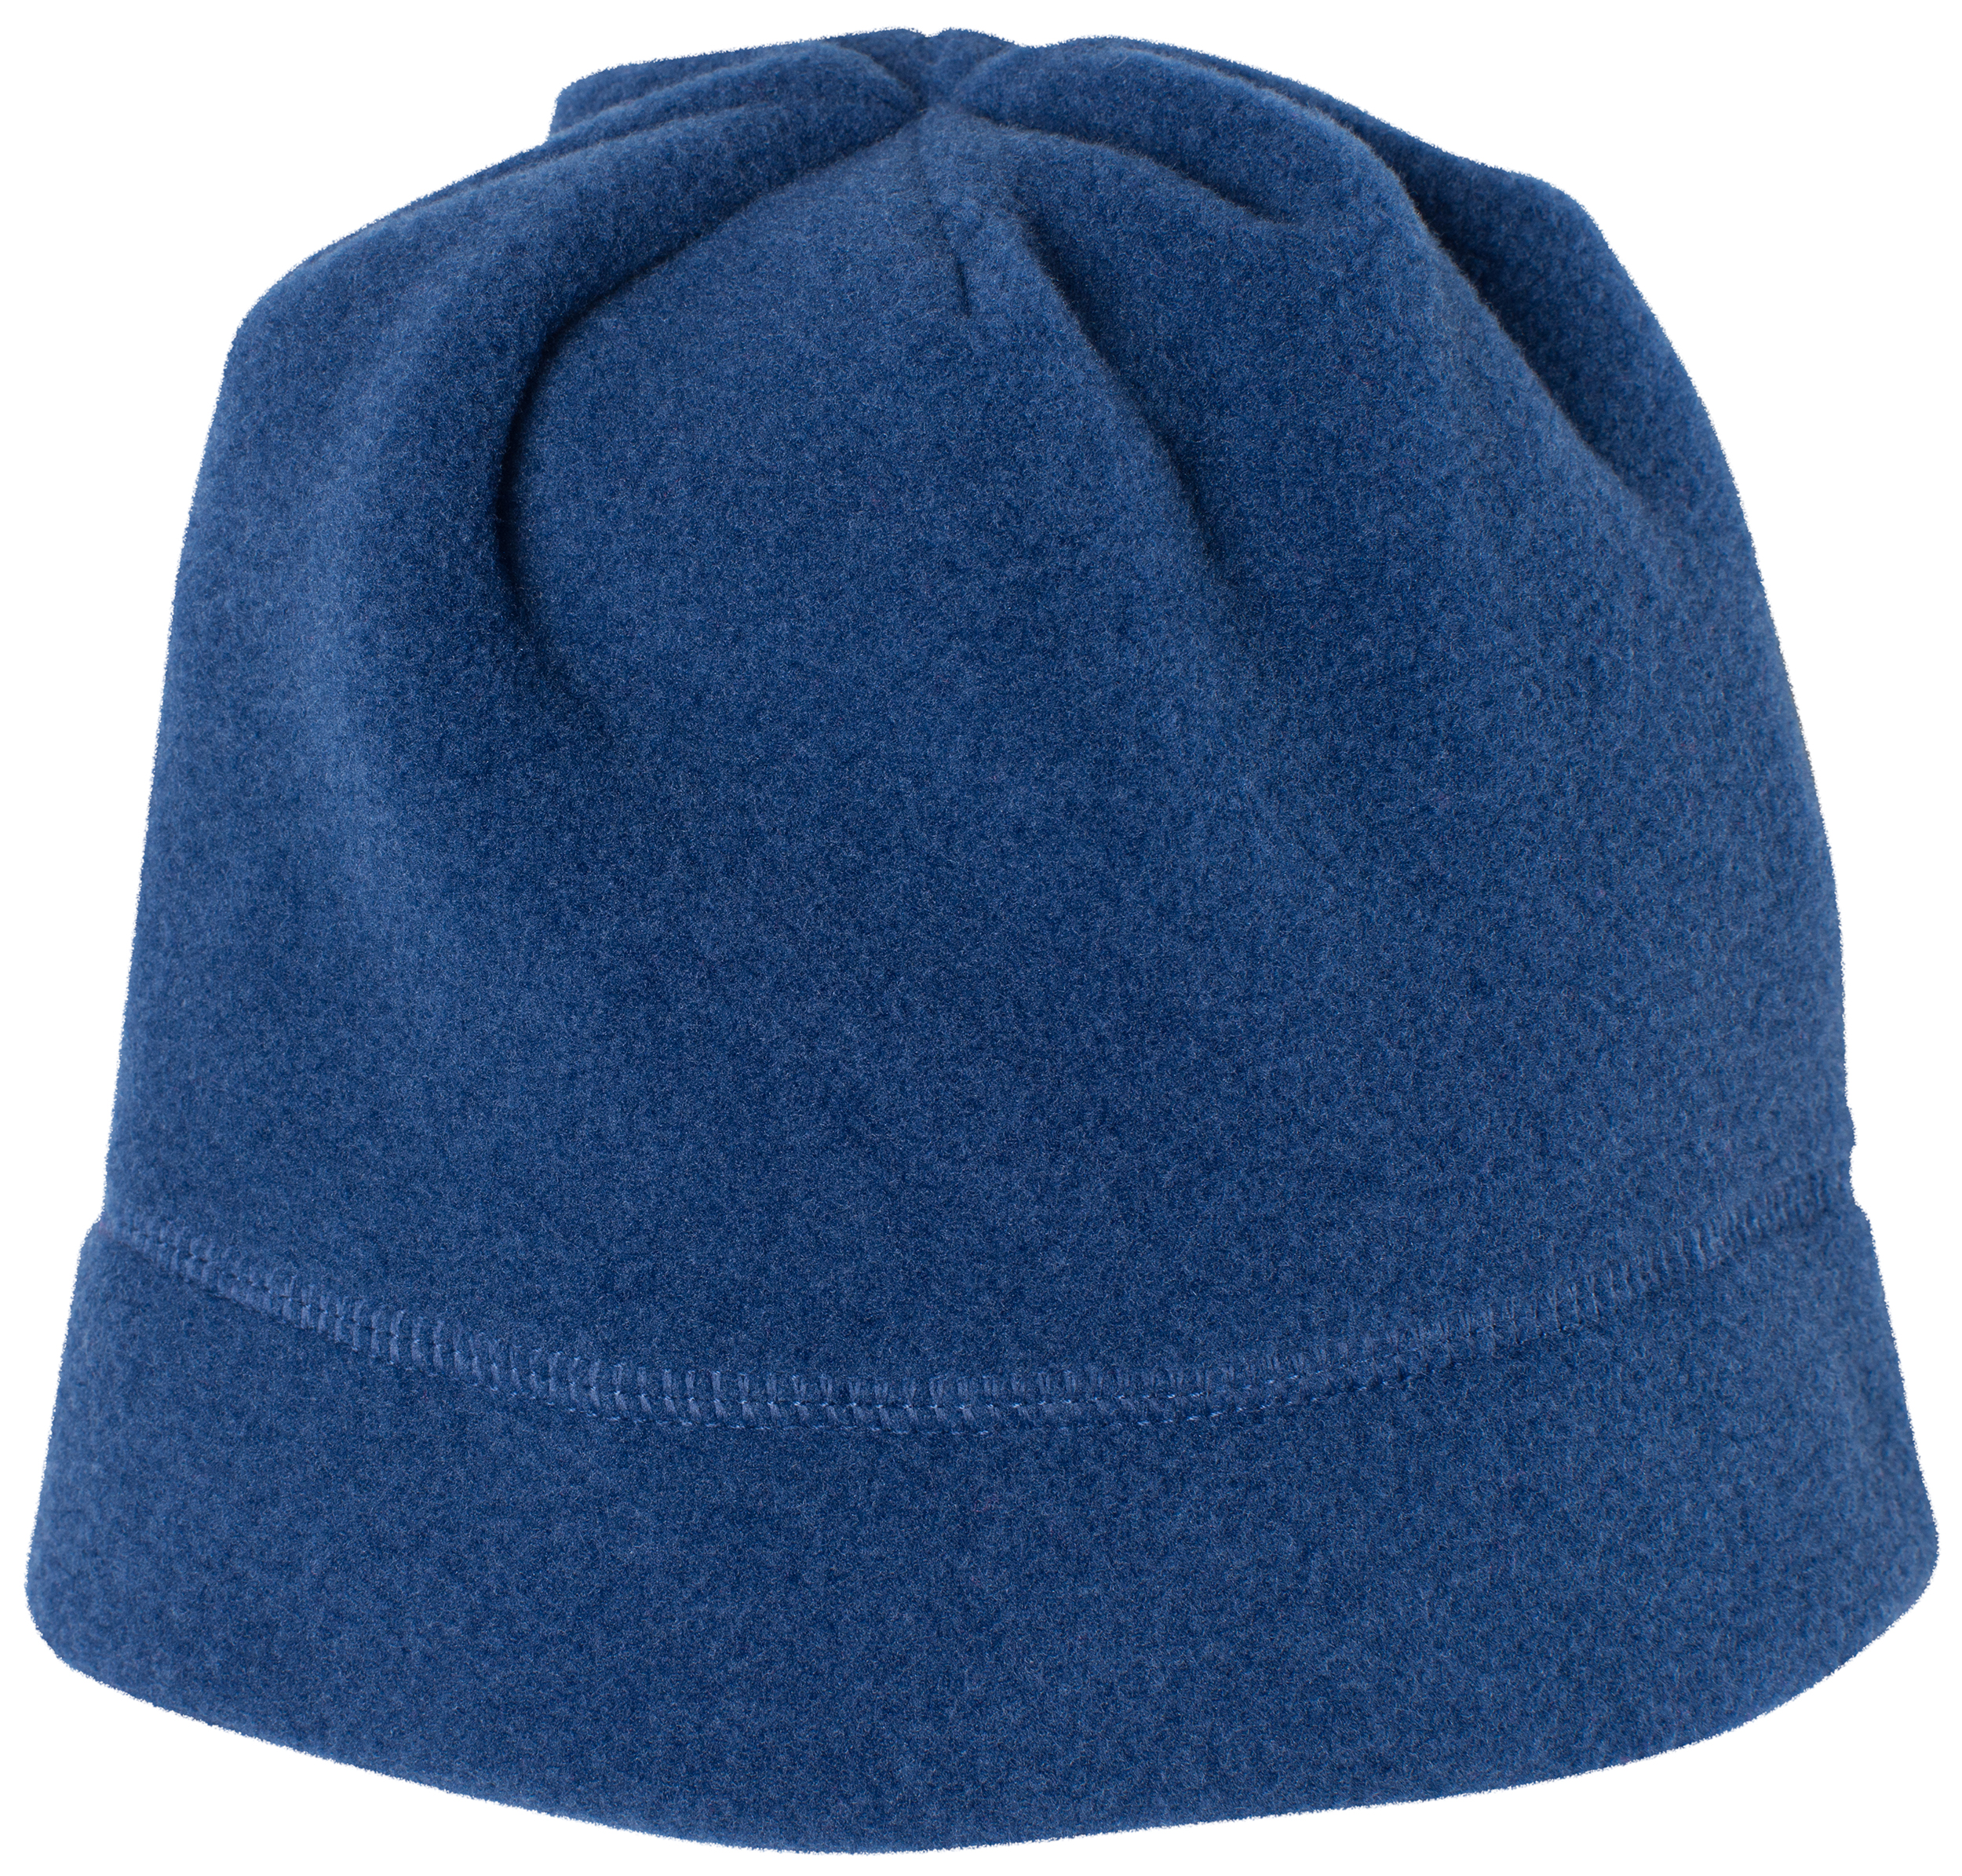 9a93d3caf MEC Fleece Toque - Infants to Youths